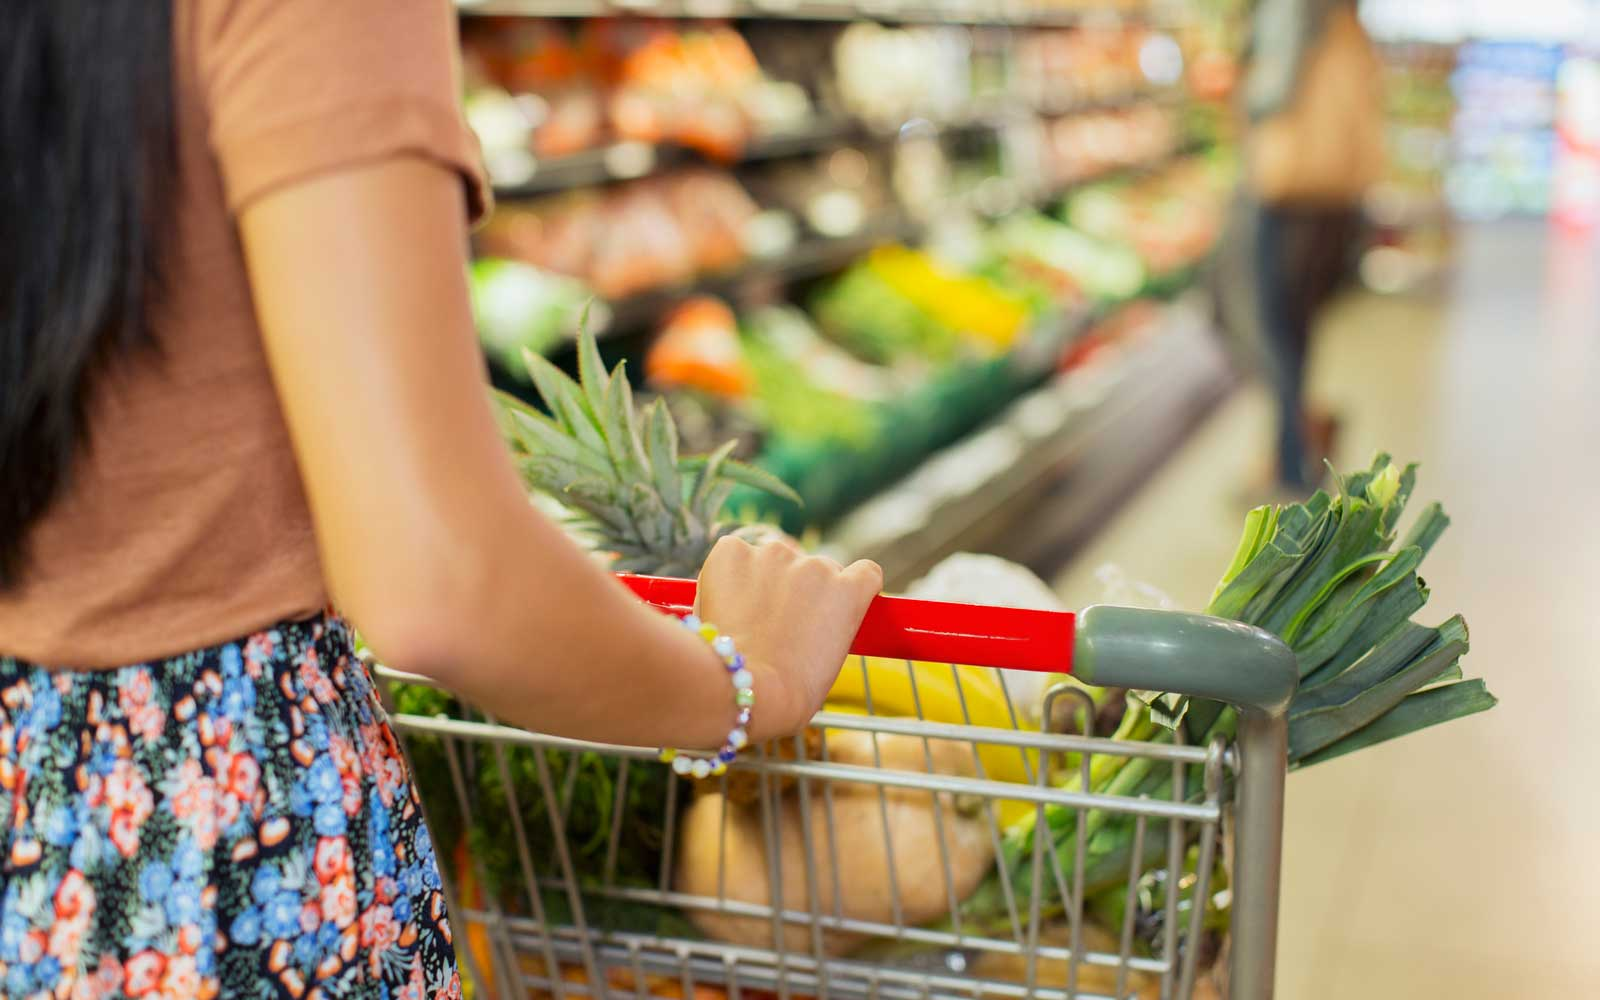 Close up of woman pushing full shopping cart in grocery store